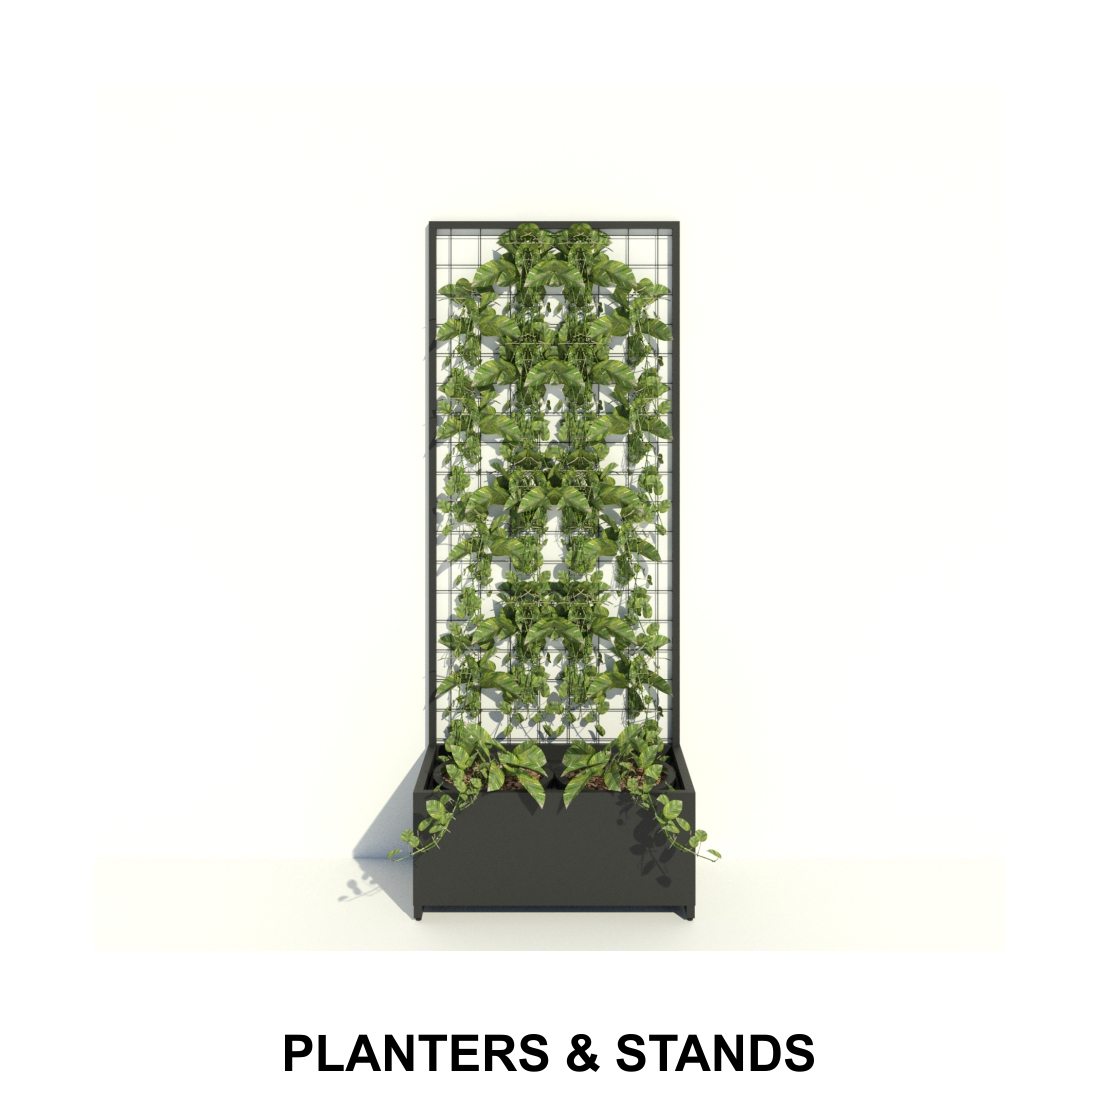 With a powder coated finish our planters can be used indoors as well as outdoors. Planter boxes come with a self watering liner for hassle free maintenance.